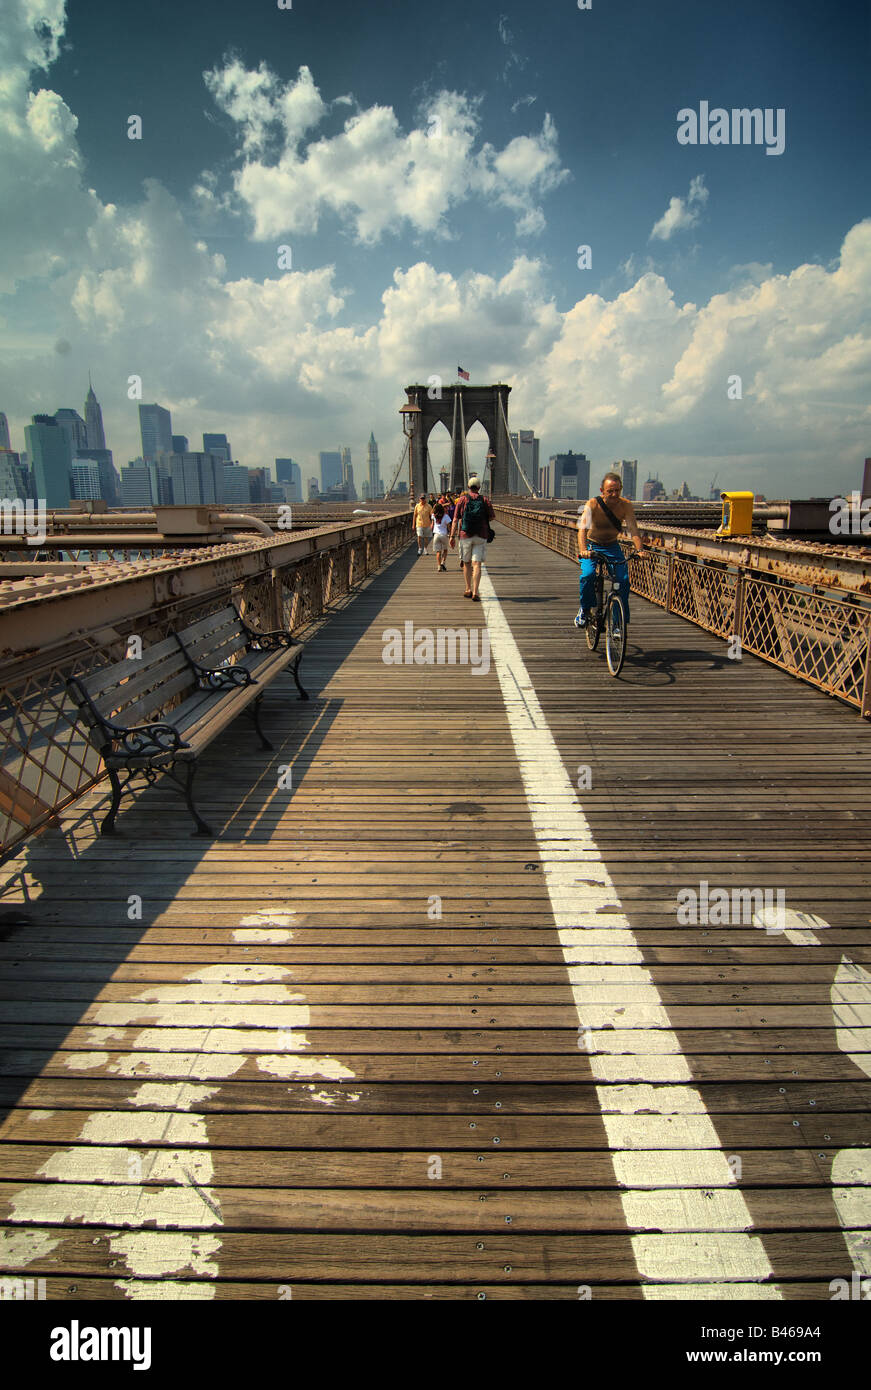 The walkway across the Brooklyn Bridge in New York city has separate lanes for pedestrian walkers and bicyclists. - Stock Image